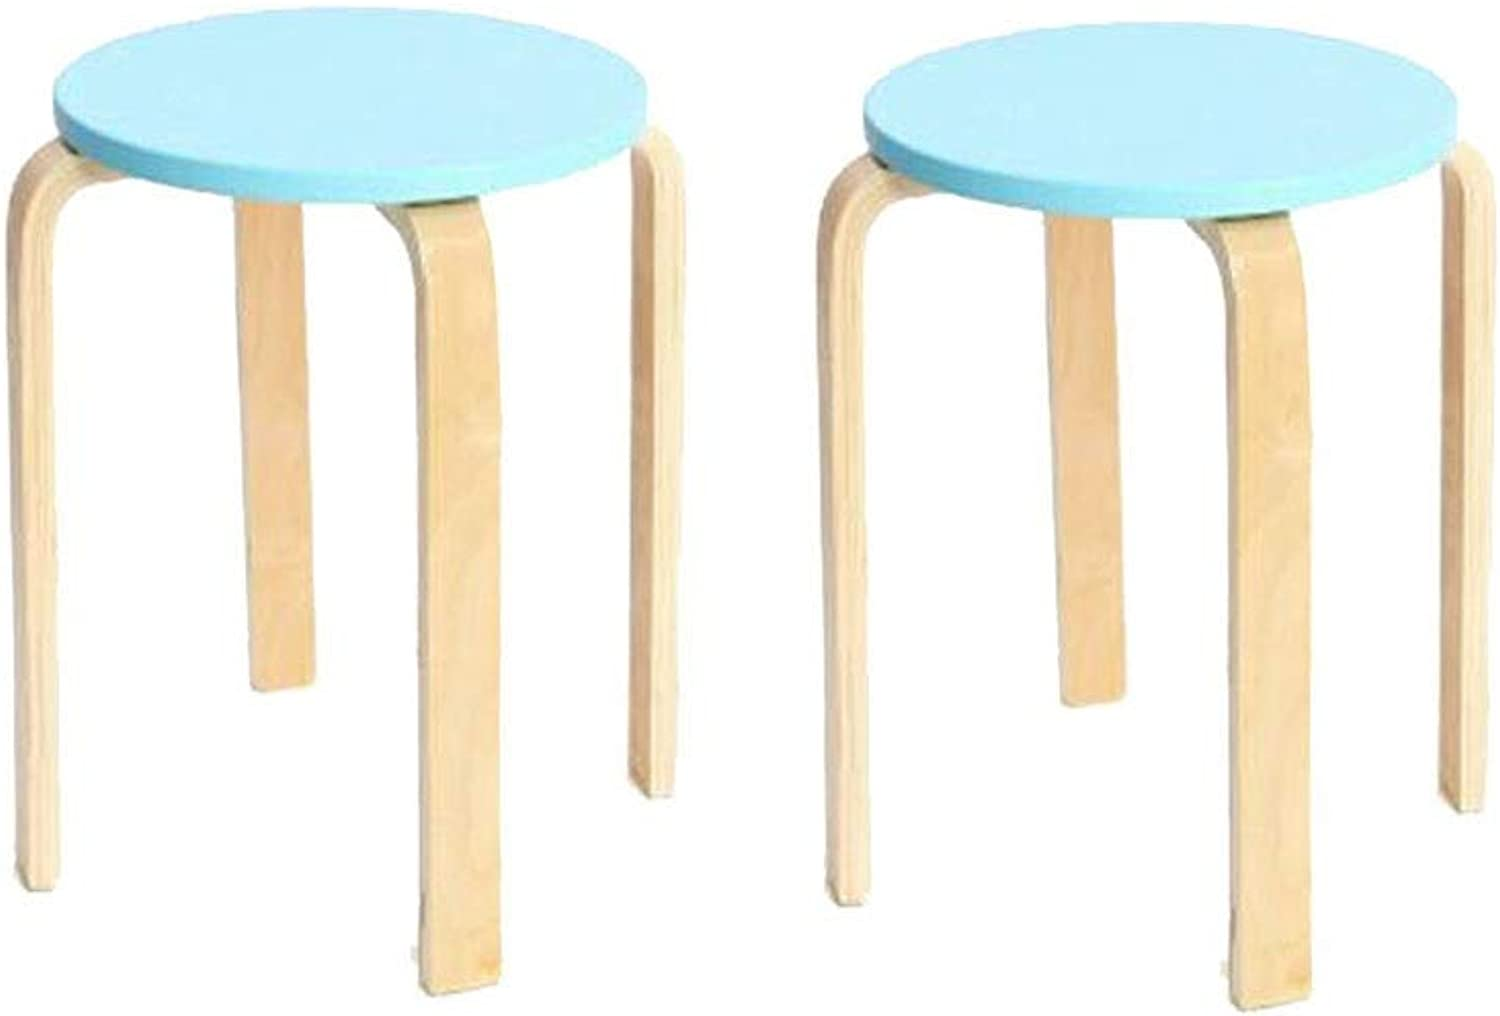 QIQI-LIFE Wooden Round Stool, Natural Bent Low Stool Candy color Chair Stacking Stool with 4 Legs and Anti-Slip Mat, 45  37cm (color   Lake bluee)